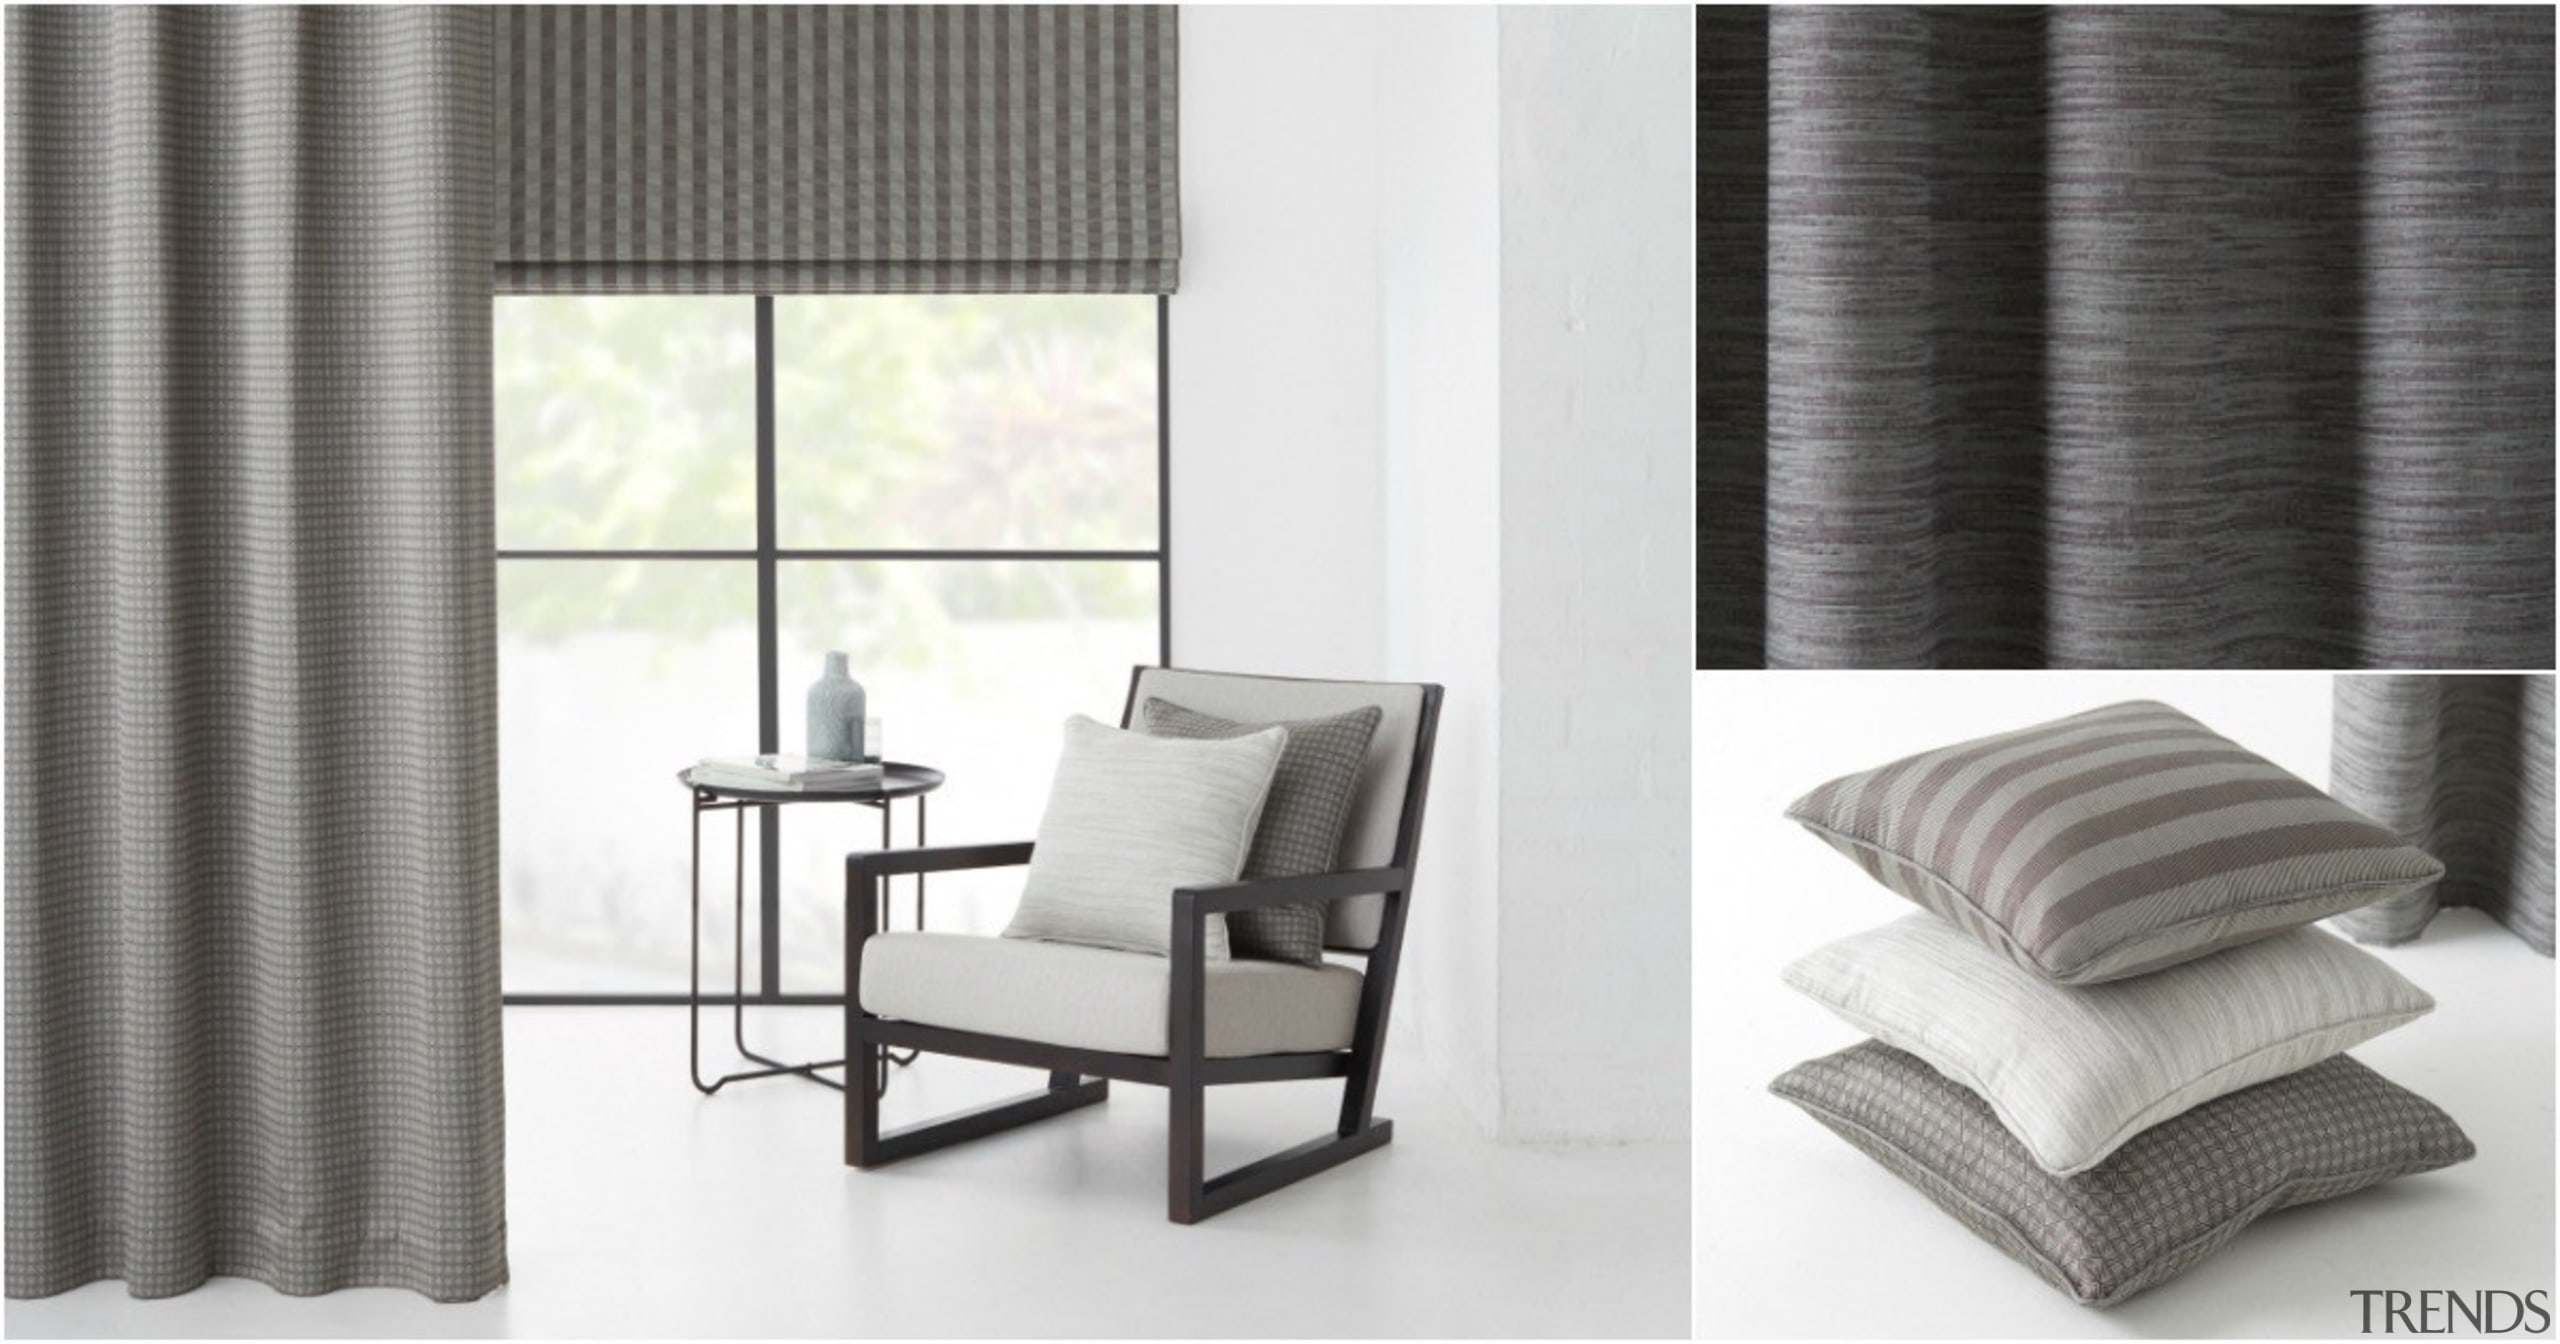 Line, tone and texture harmonise in SUMMIT, a chair, curtain, decor, floor, furniture, home, interior design, product, shade, table, textile, window, window blind, window covering, window treatment, white, gray